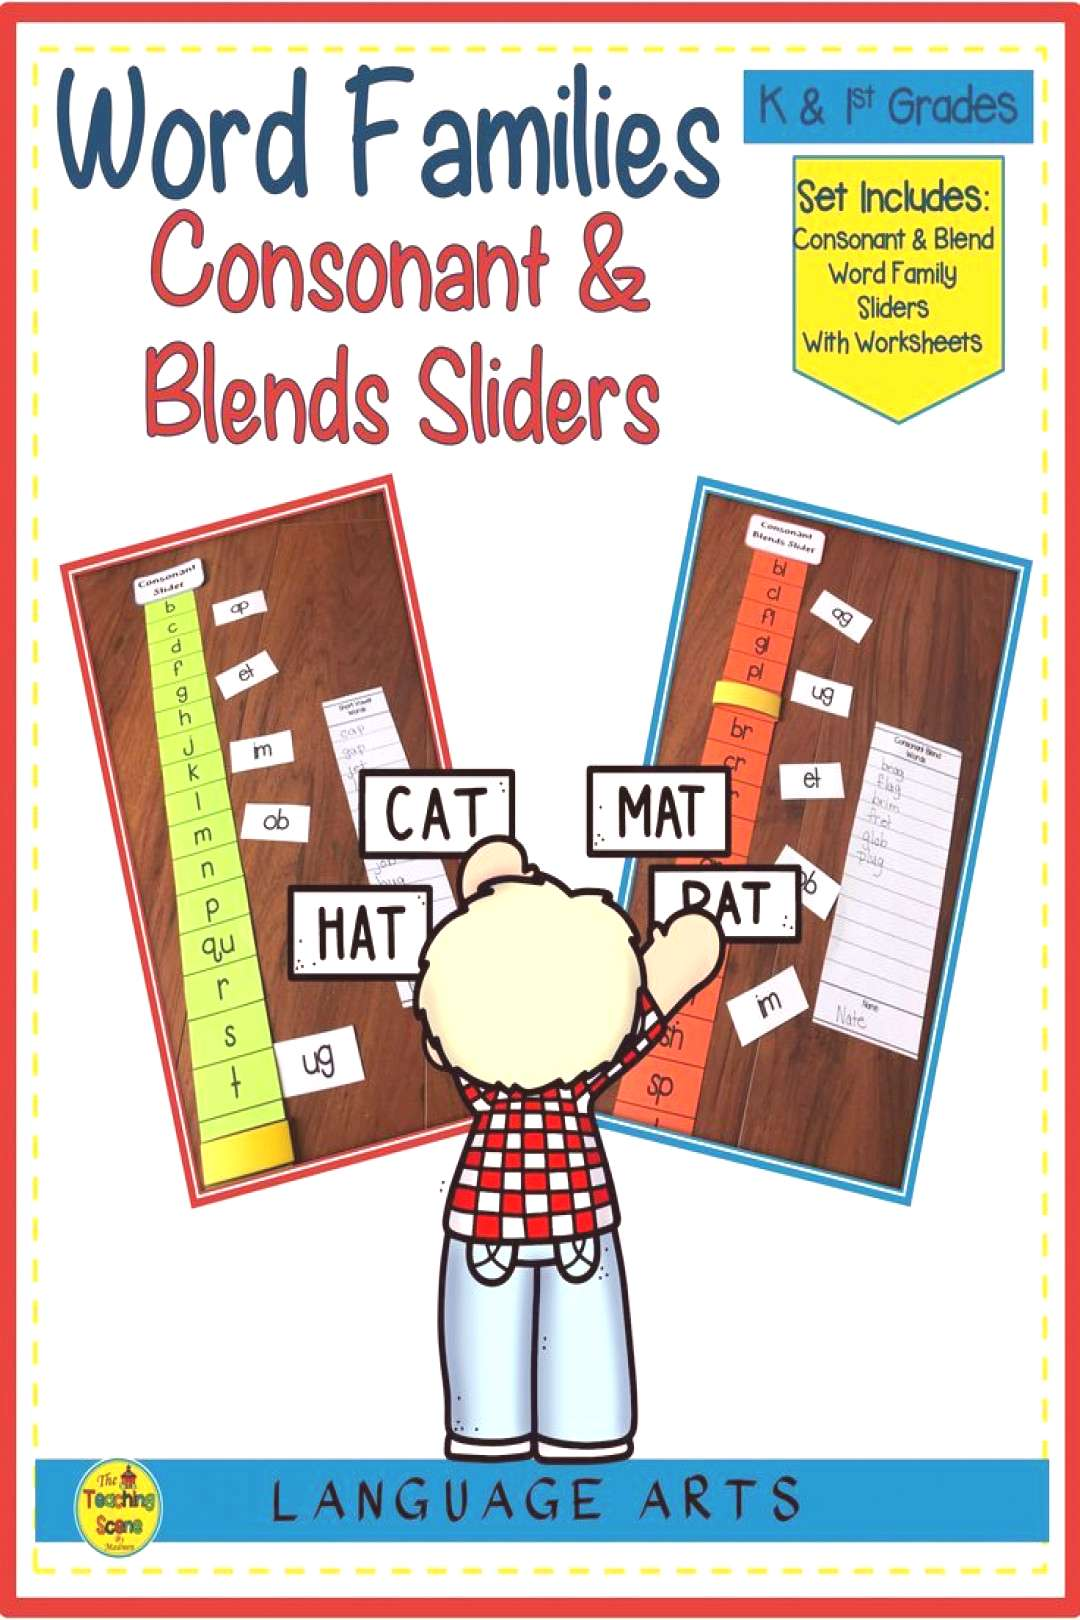 Word Family Consonant amp Blend Sliders Are you looking for an activity to enhance your student word